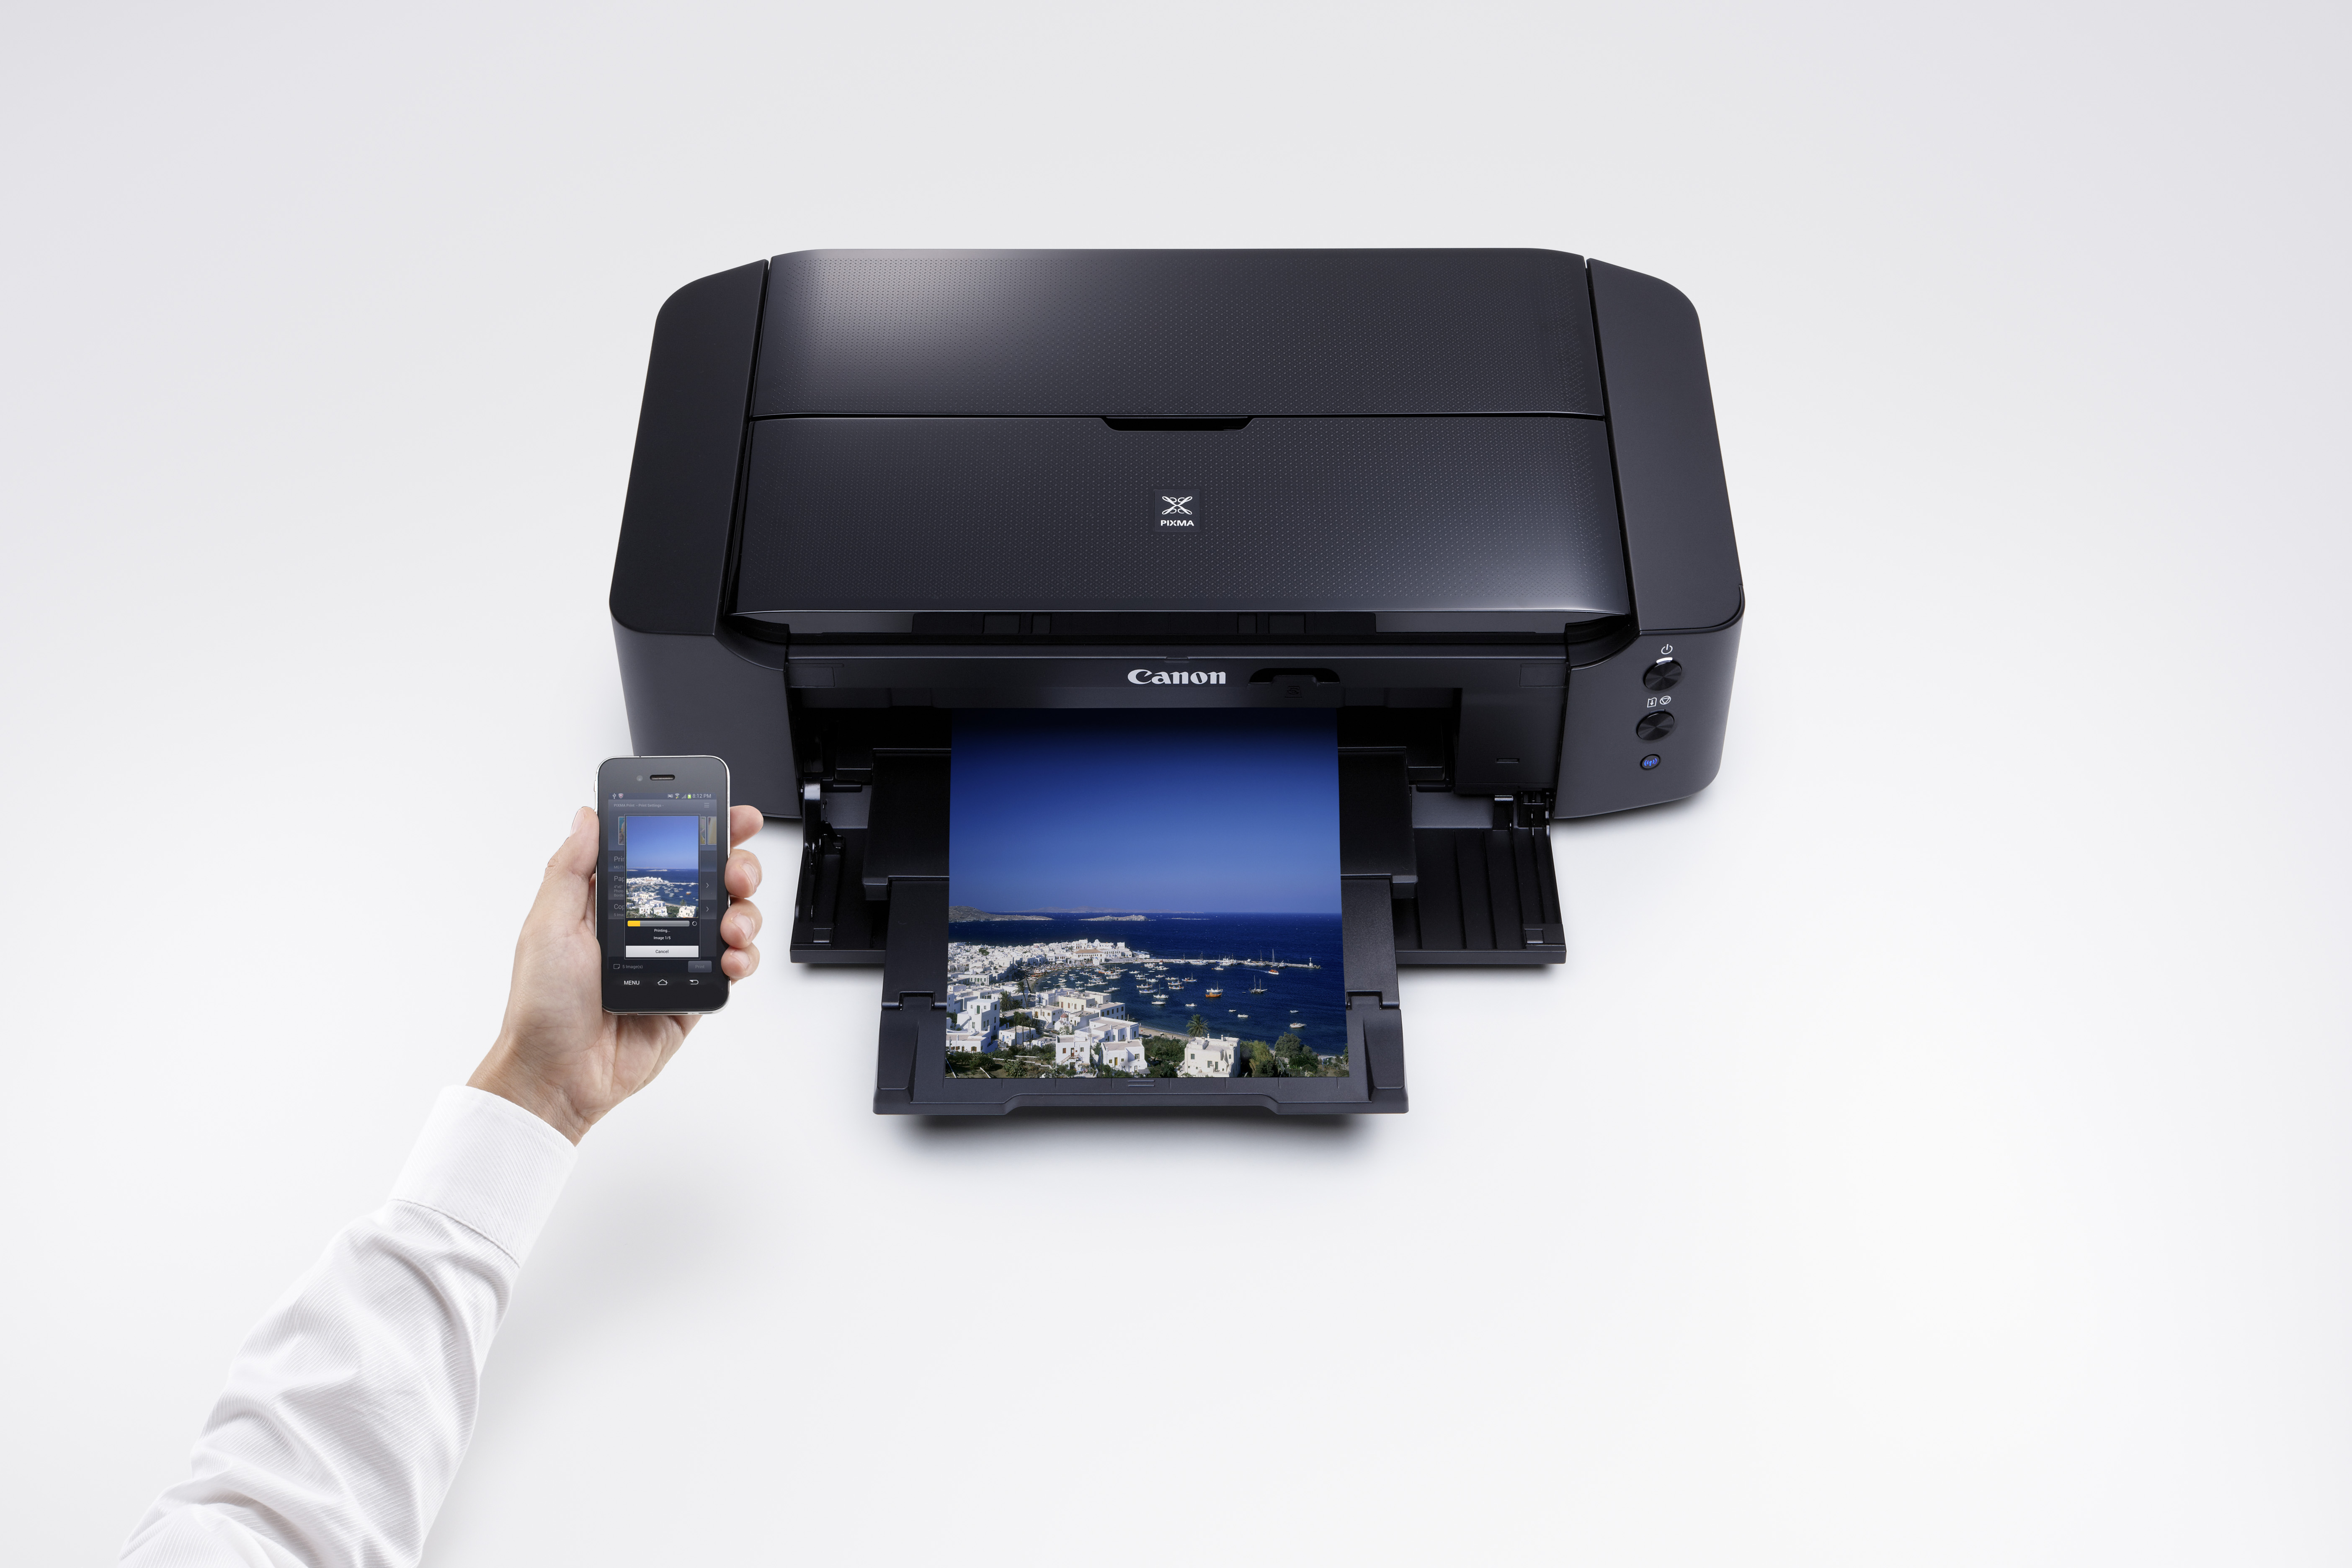 Smart print from your device